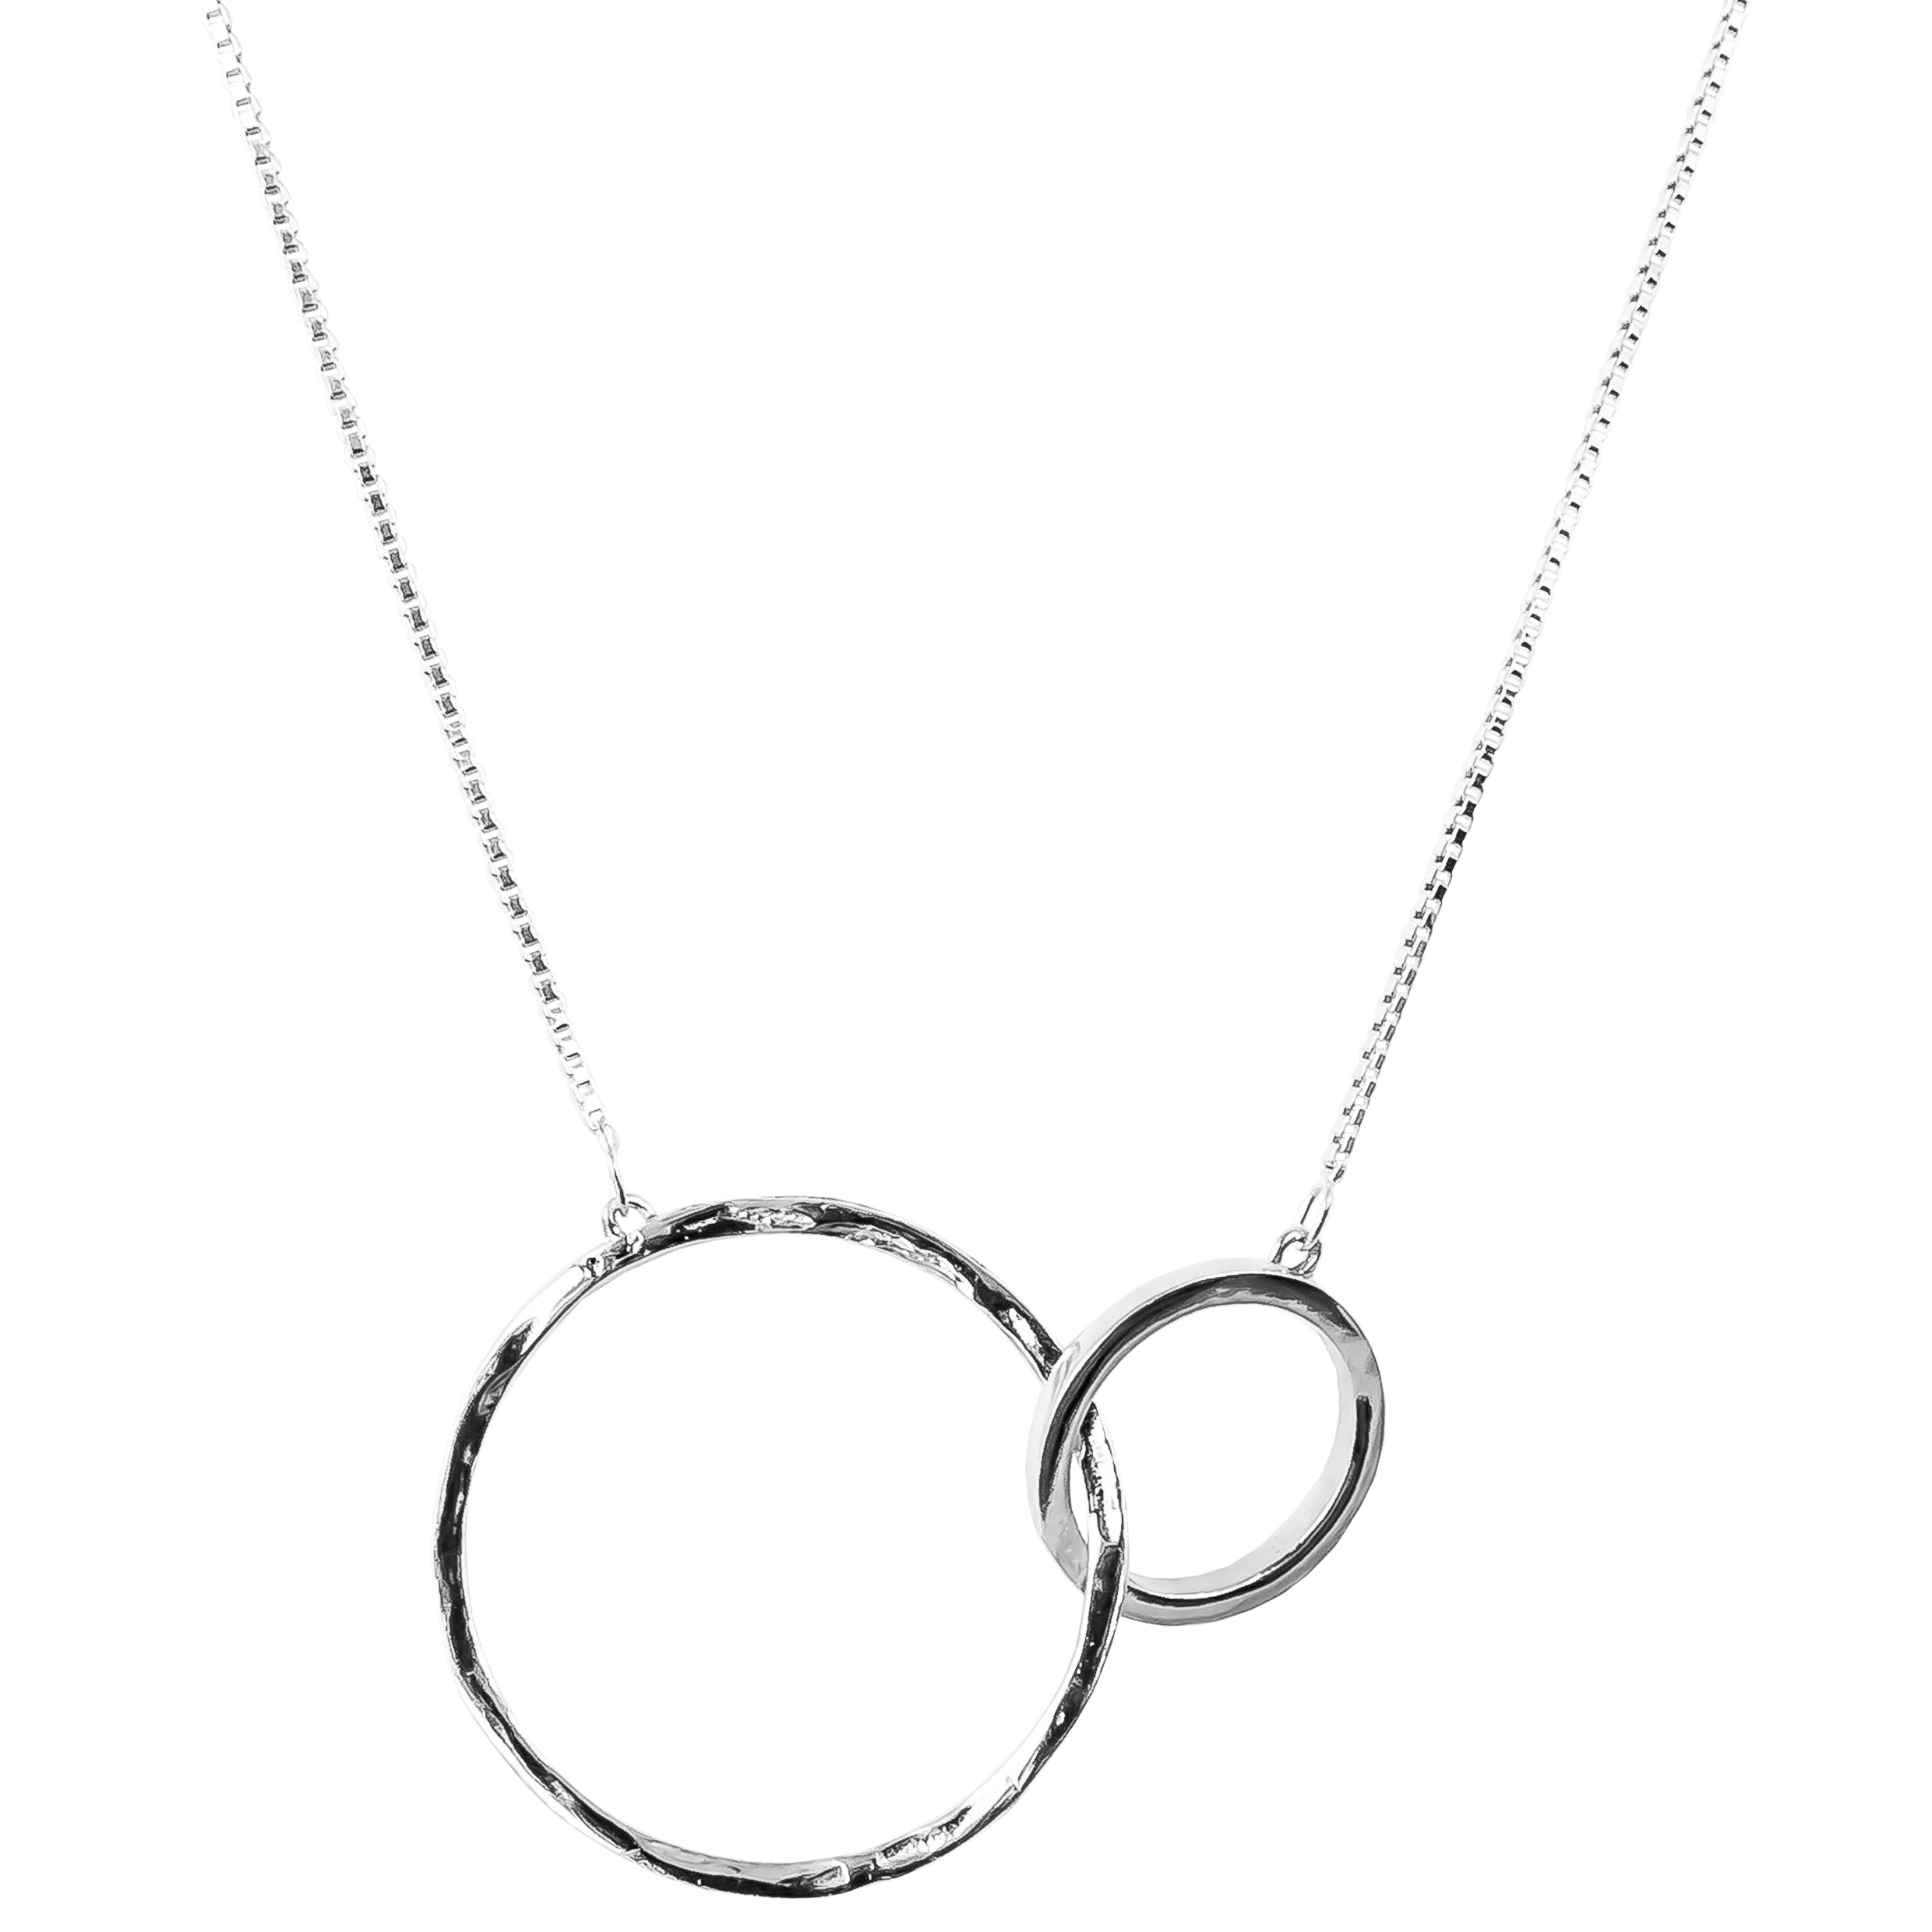 Phoenix X-Large Linked Ring Necklace - Long | Silver